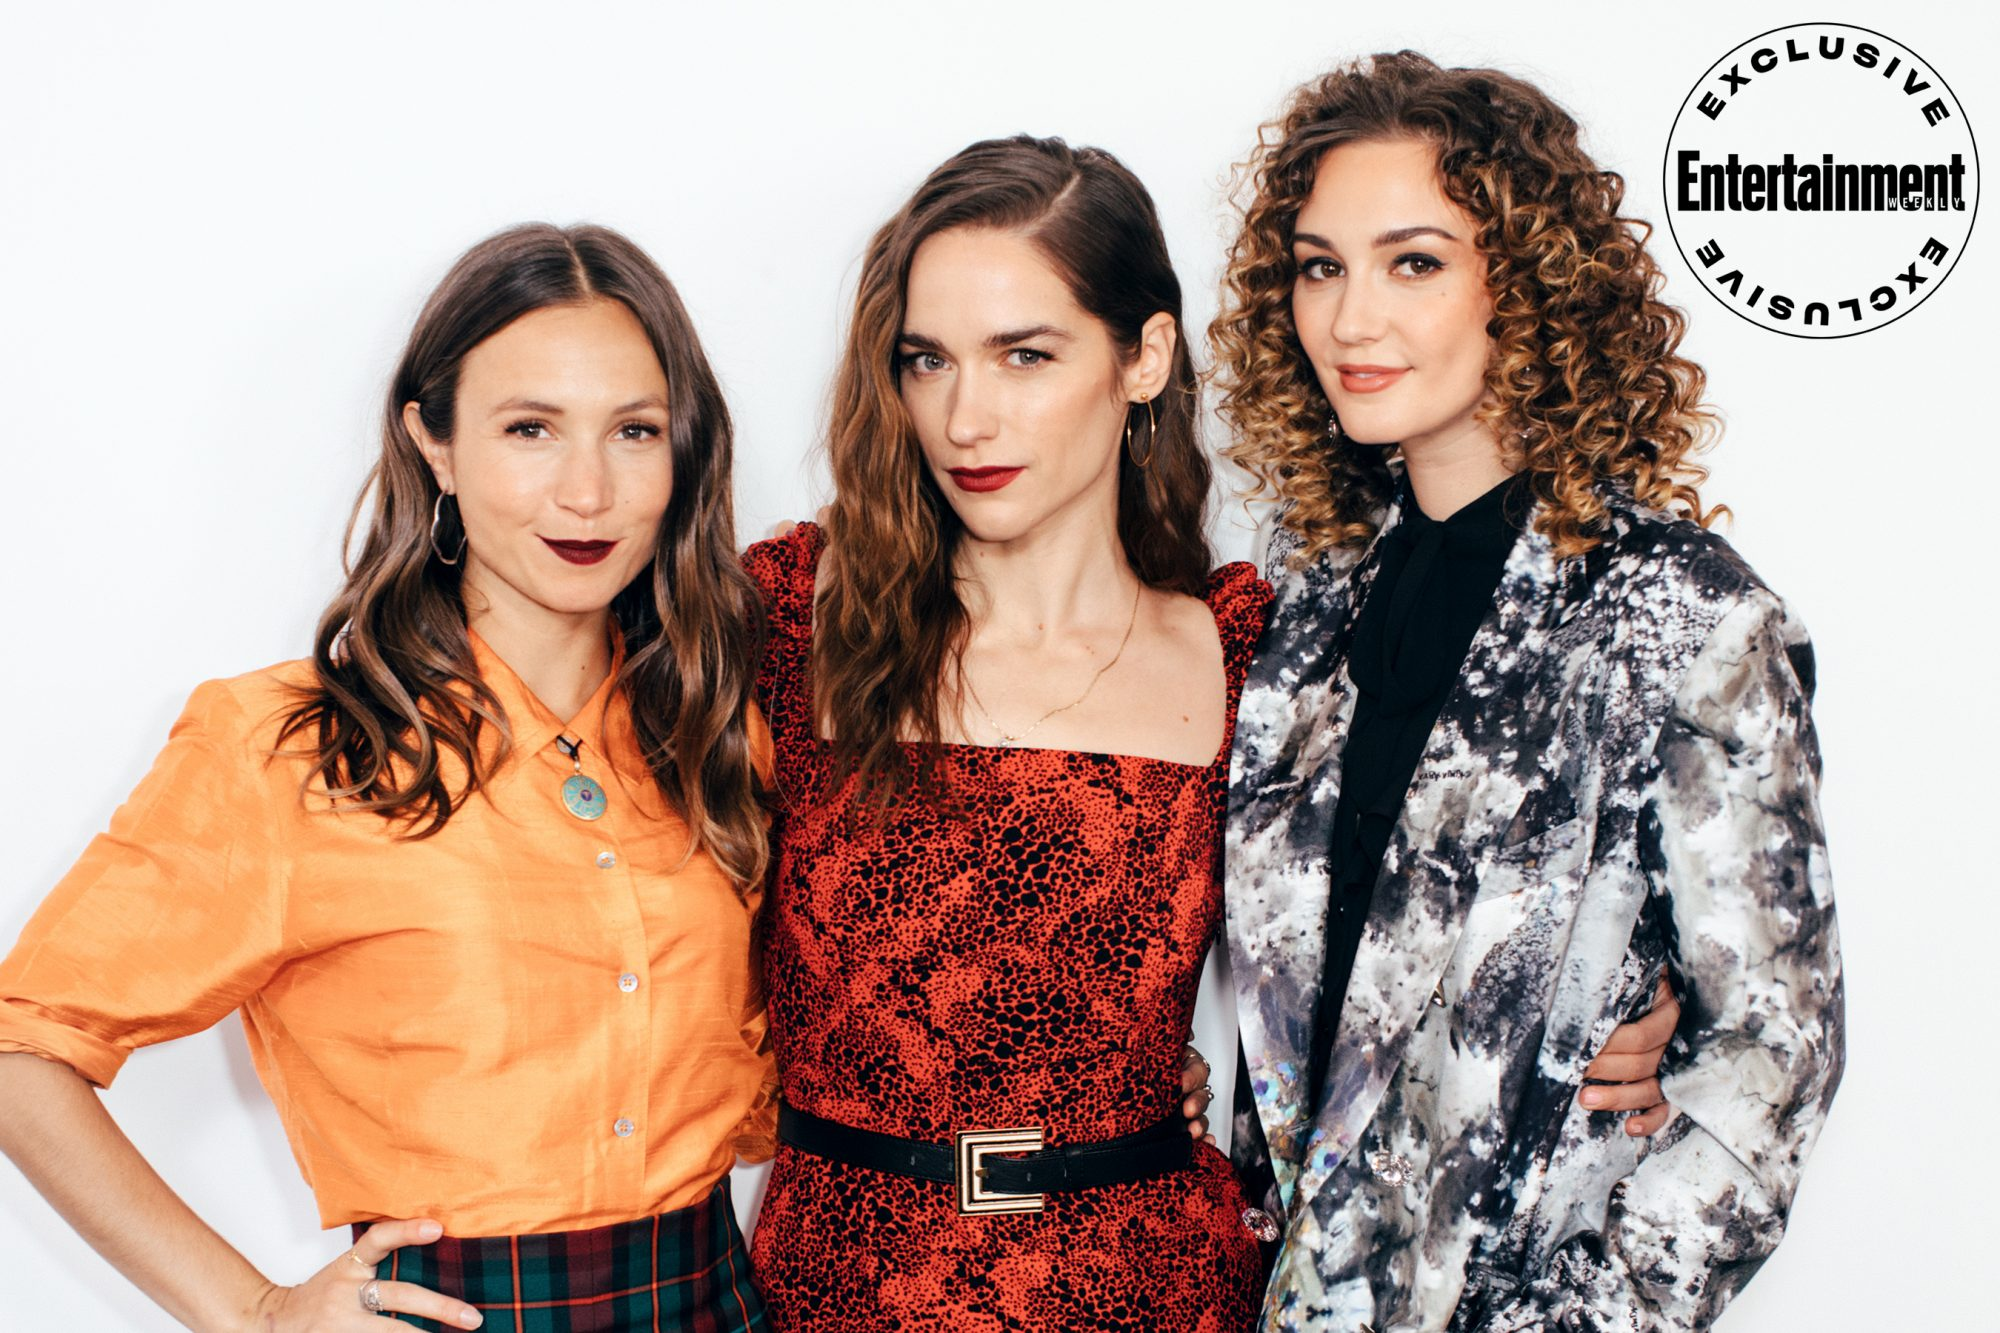 Dominique Provost-Chalkley, Melanie Scrofano, and Katherine Barrell from Wynonna Earp